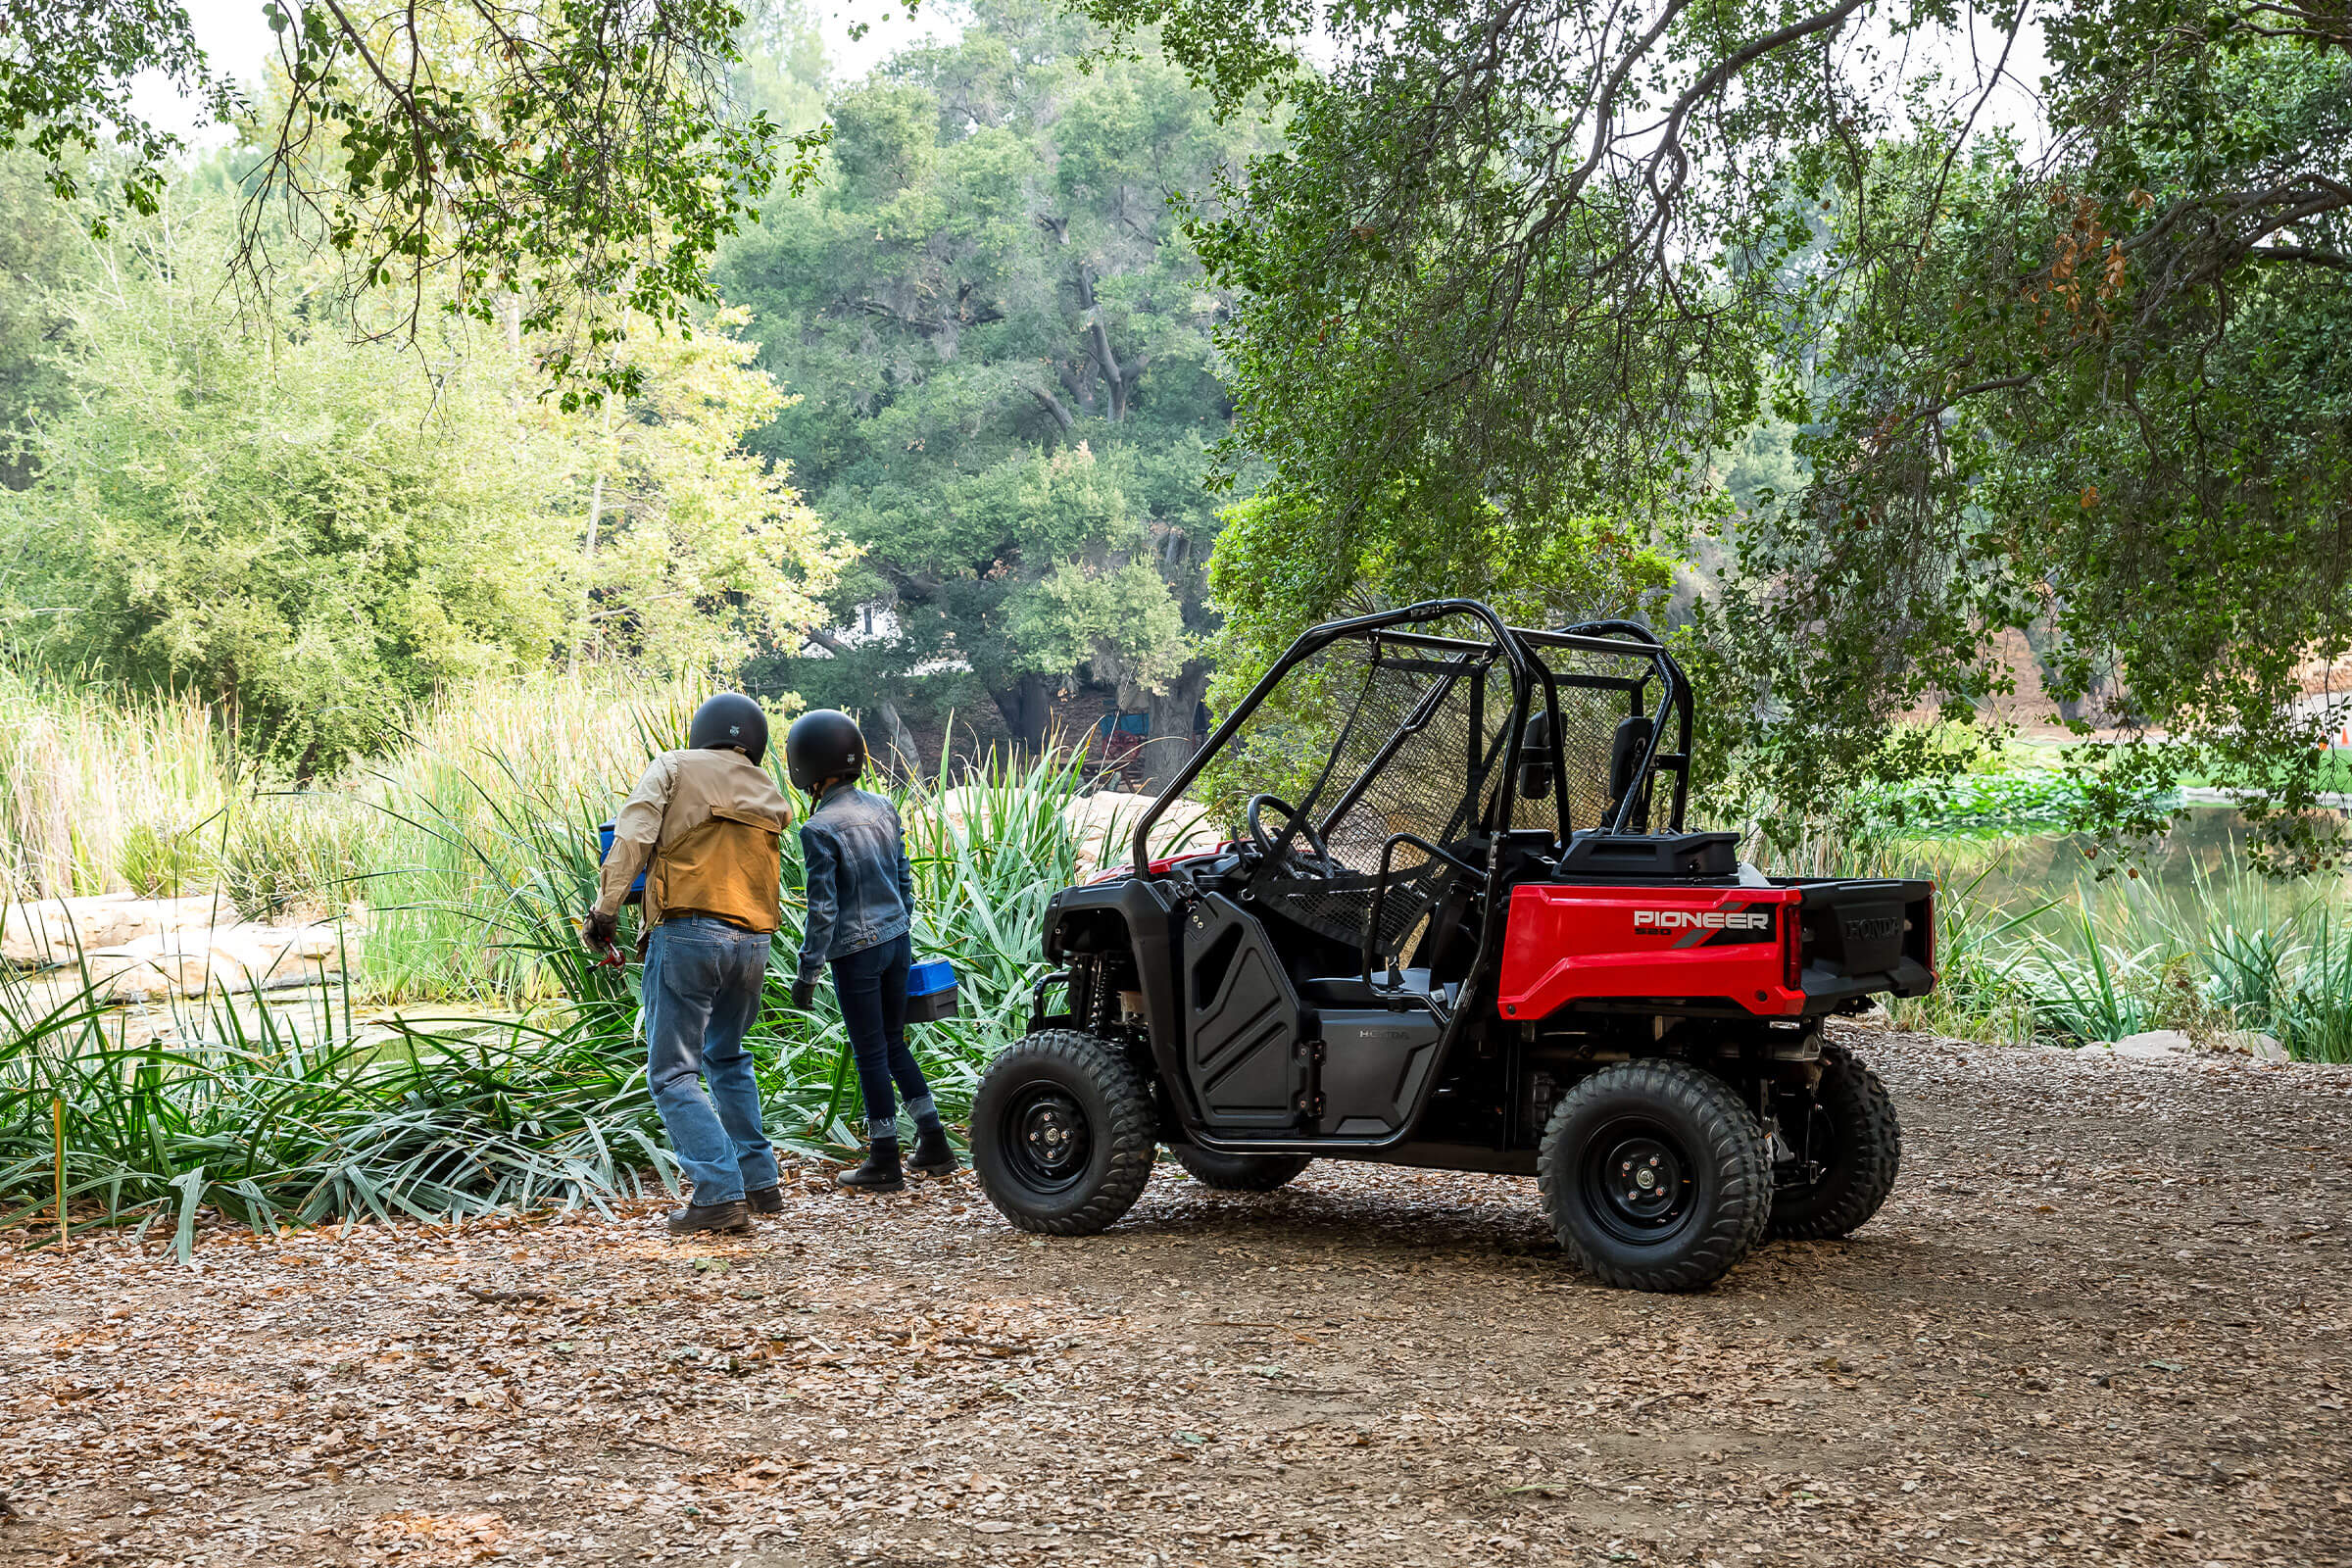 2021 Honda Pioneer 520 in Rapid City, South Dakota - Photo 2